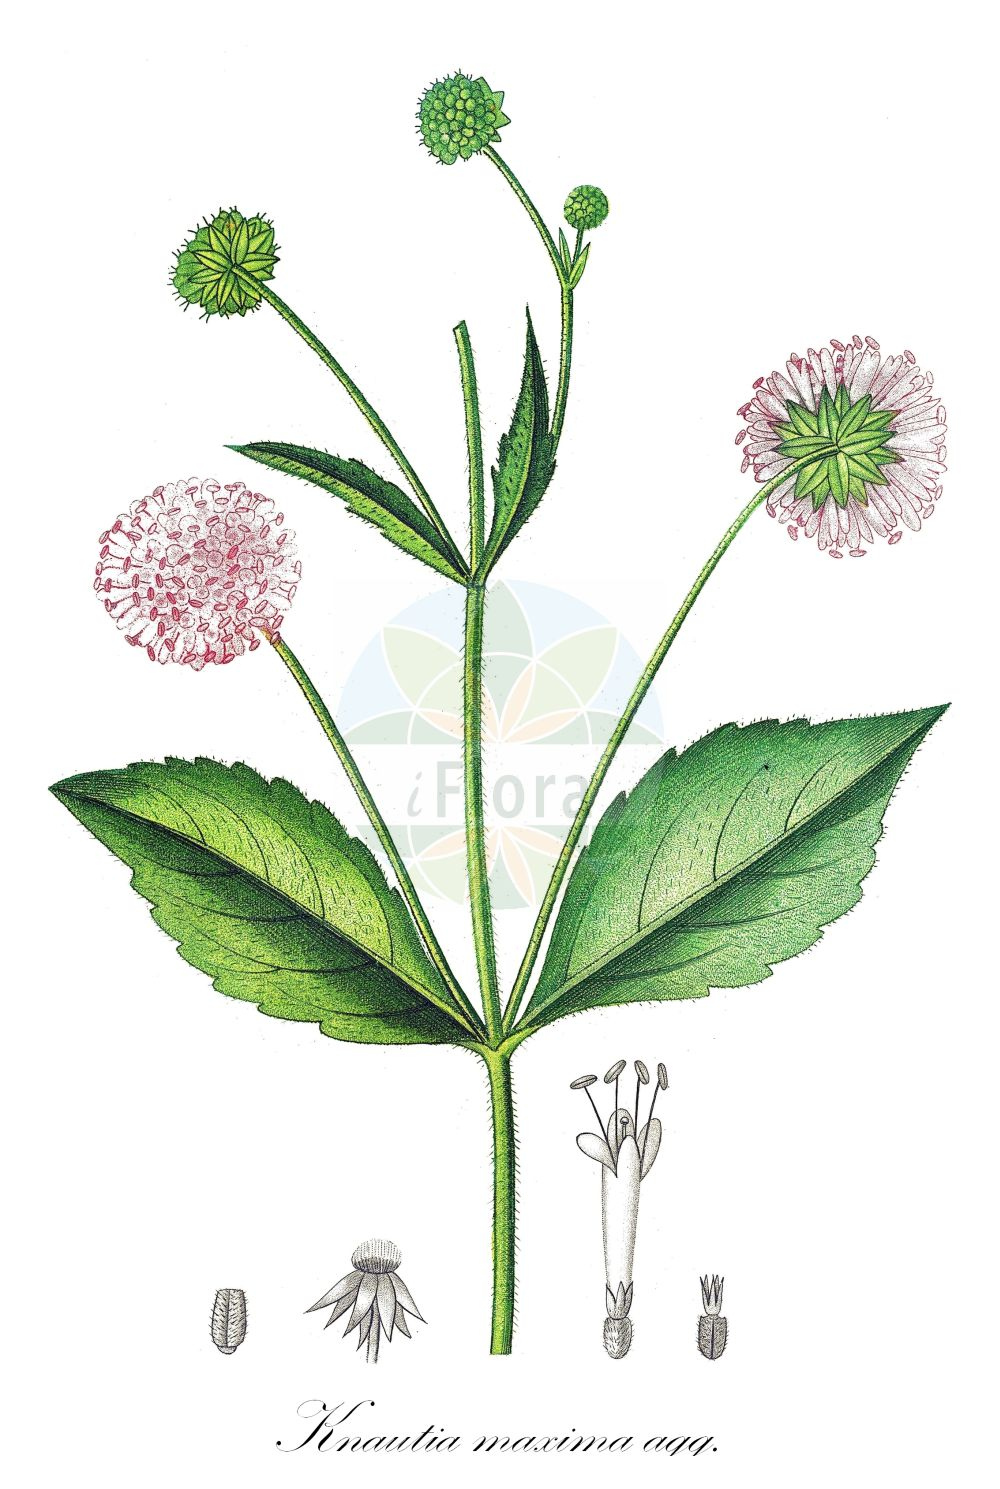 Historische Abbildung von Knautia maxima agg. (Wald-Witwenblume - Wood Scabious). Das Bild zeigt Blatt, Bluete, Frucht und Same. ---- Historical Drawing of Knautia maxima agg. (Wald-Witwenblume - Wood Scabious).The image is showing leaf, flower, fruit and seed.(Knautia maxima agg.,Wald-Witwenblume,Wood Scabious,Knautia,Witwenblume,Scabious,Caprifoliaceae,Geissblattgewaechse,Honeysuckle family,Blatt,Bluete,Frucht,Same,leaf,flower,fruit,seed,de Saint-Hilaire (1828-1833))